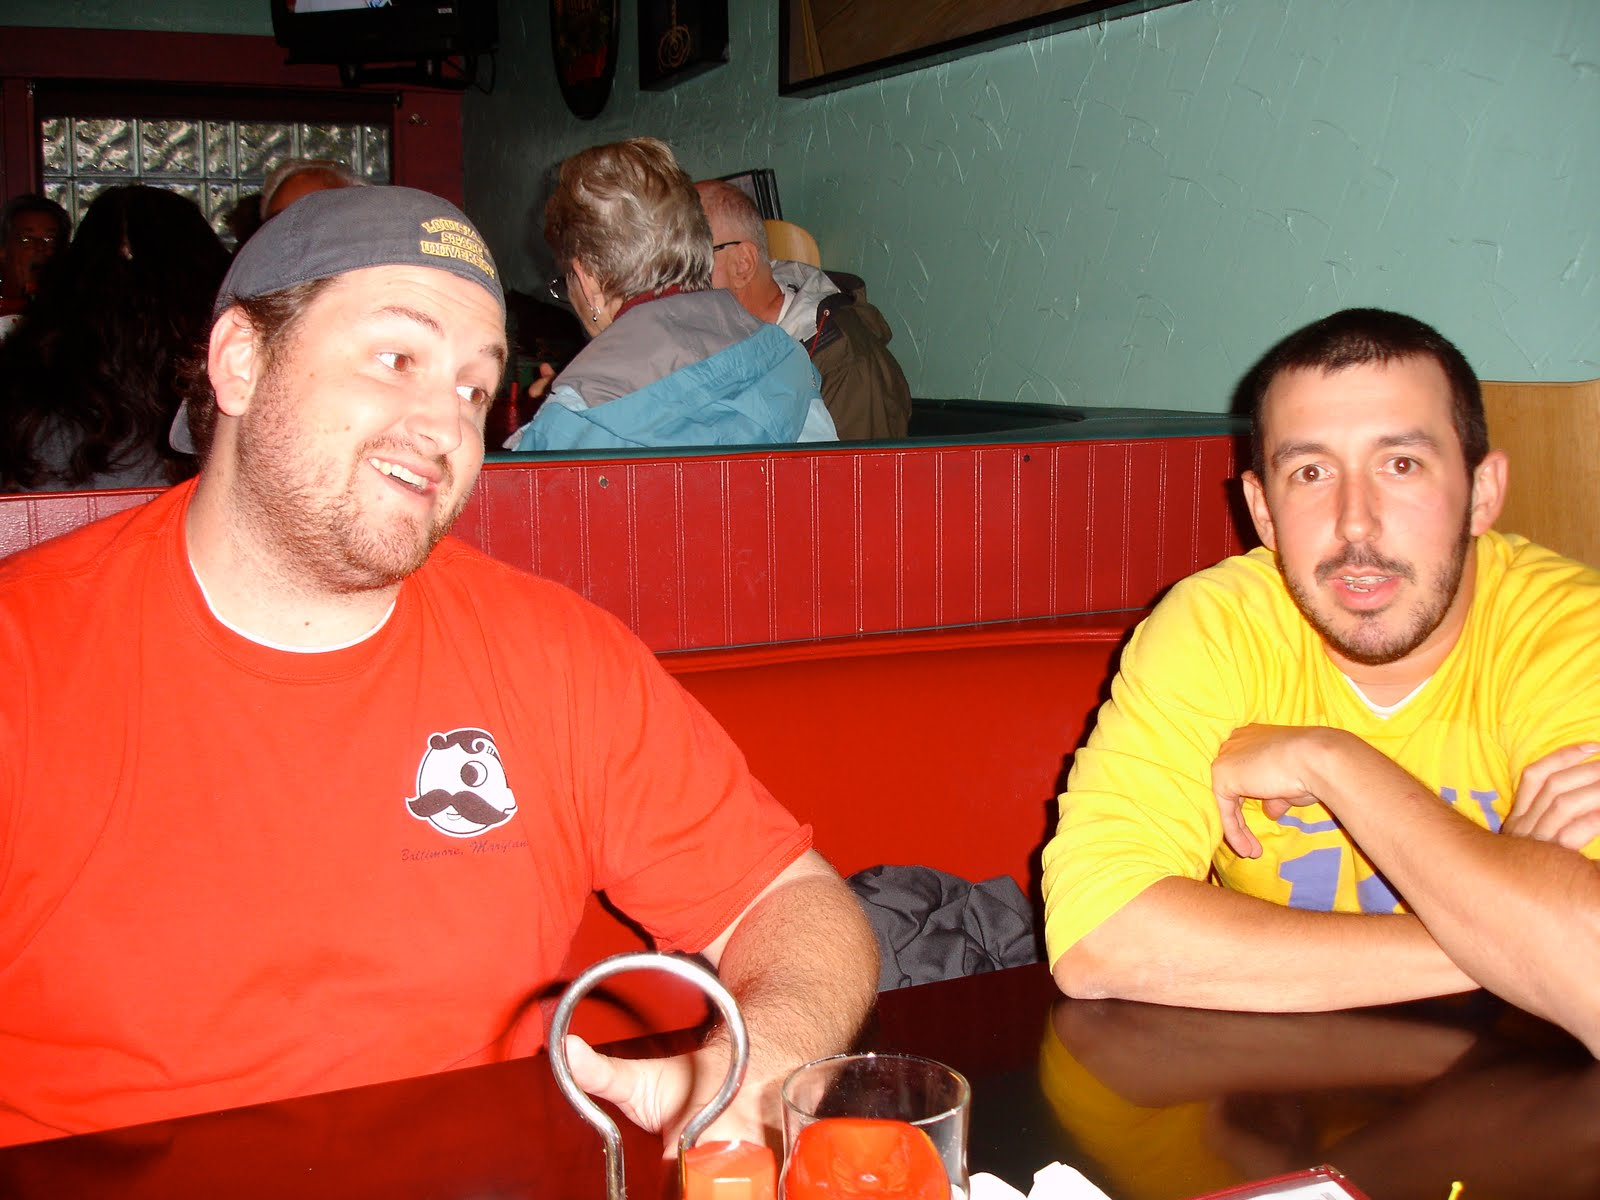 Jay Ducote and Eusebio Gongora await the Kodiak Arrest Challenge at Humpy's